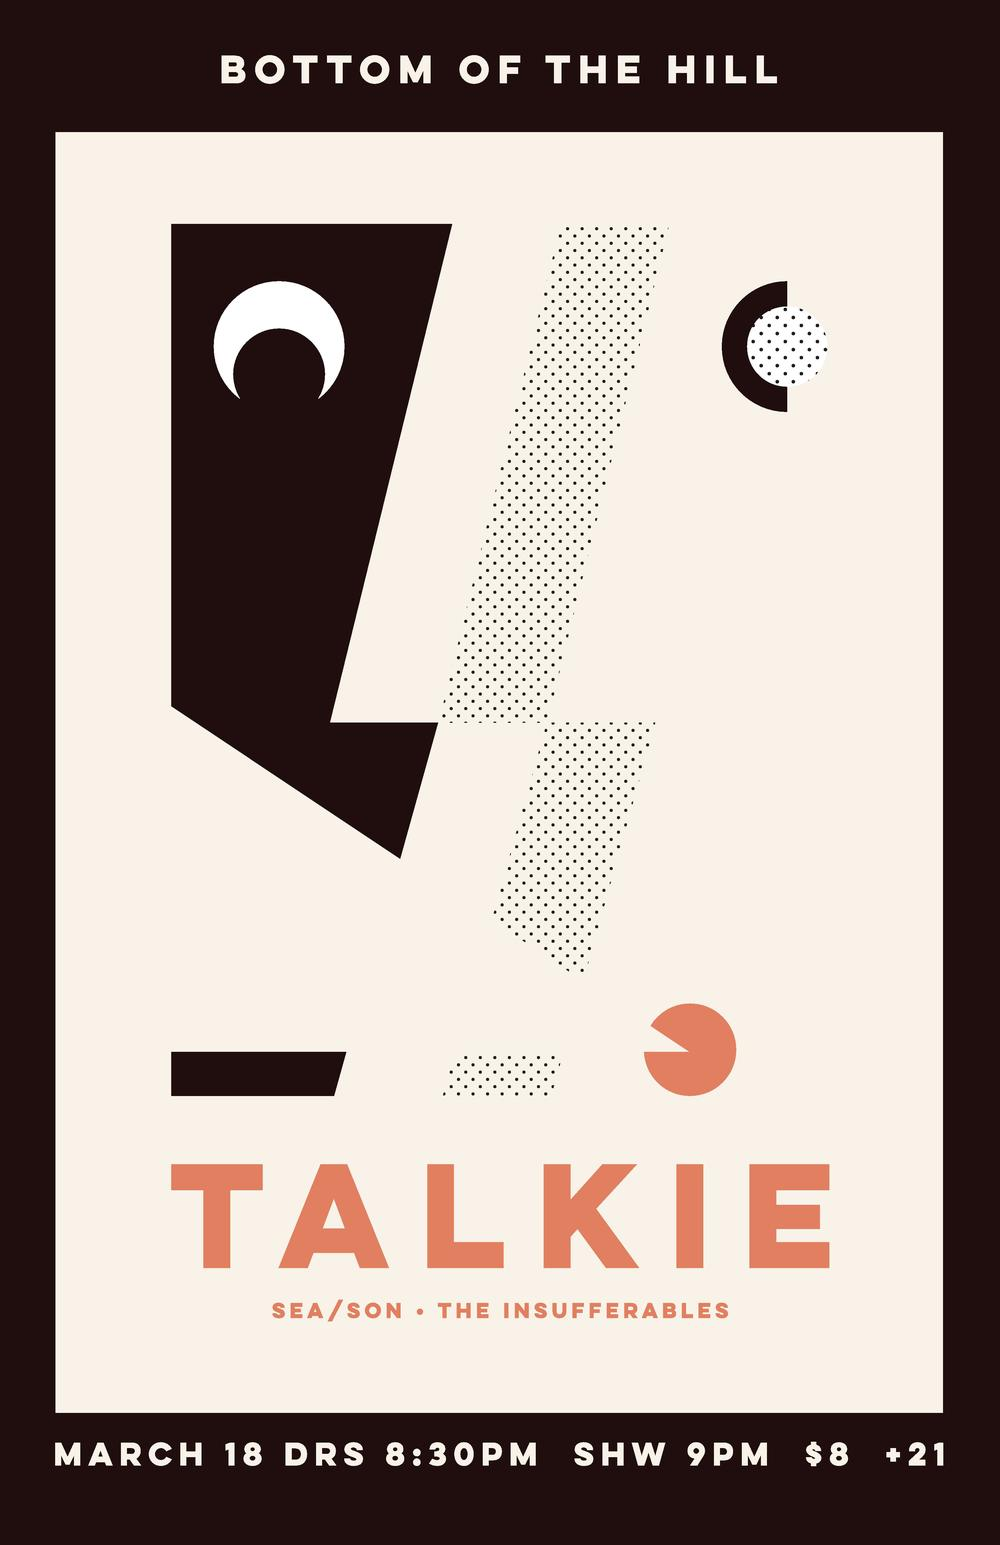 talkie show poster-page-001.jpg